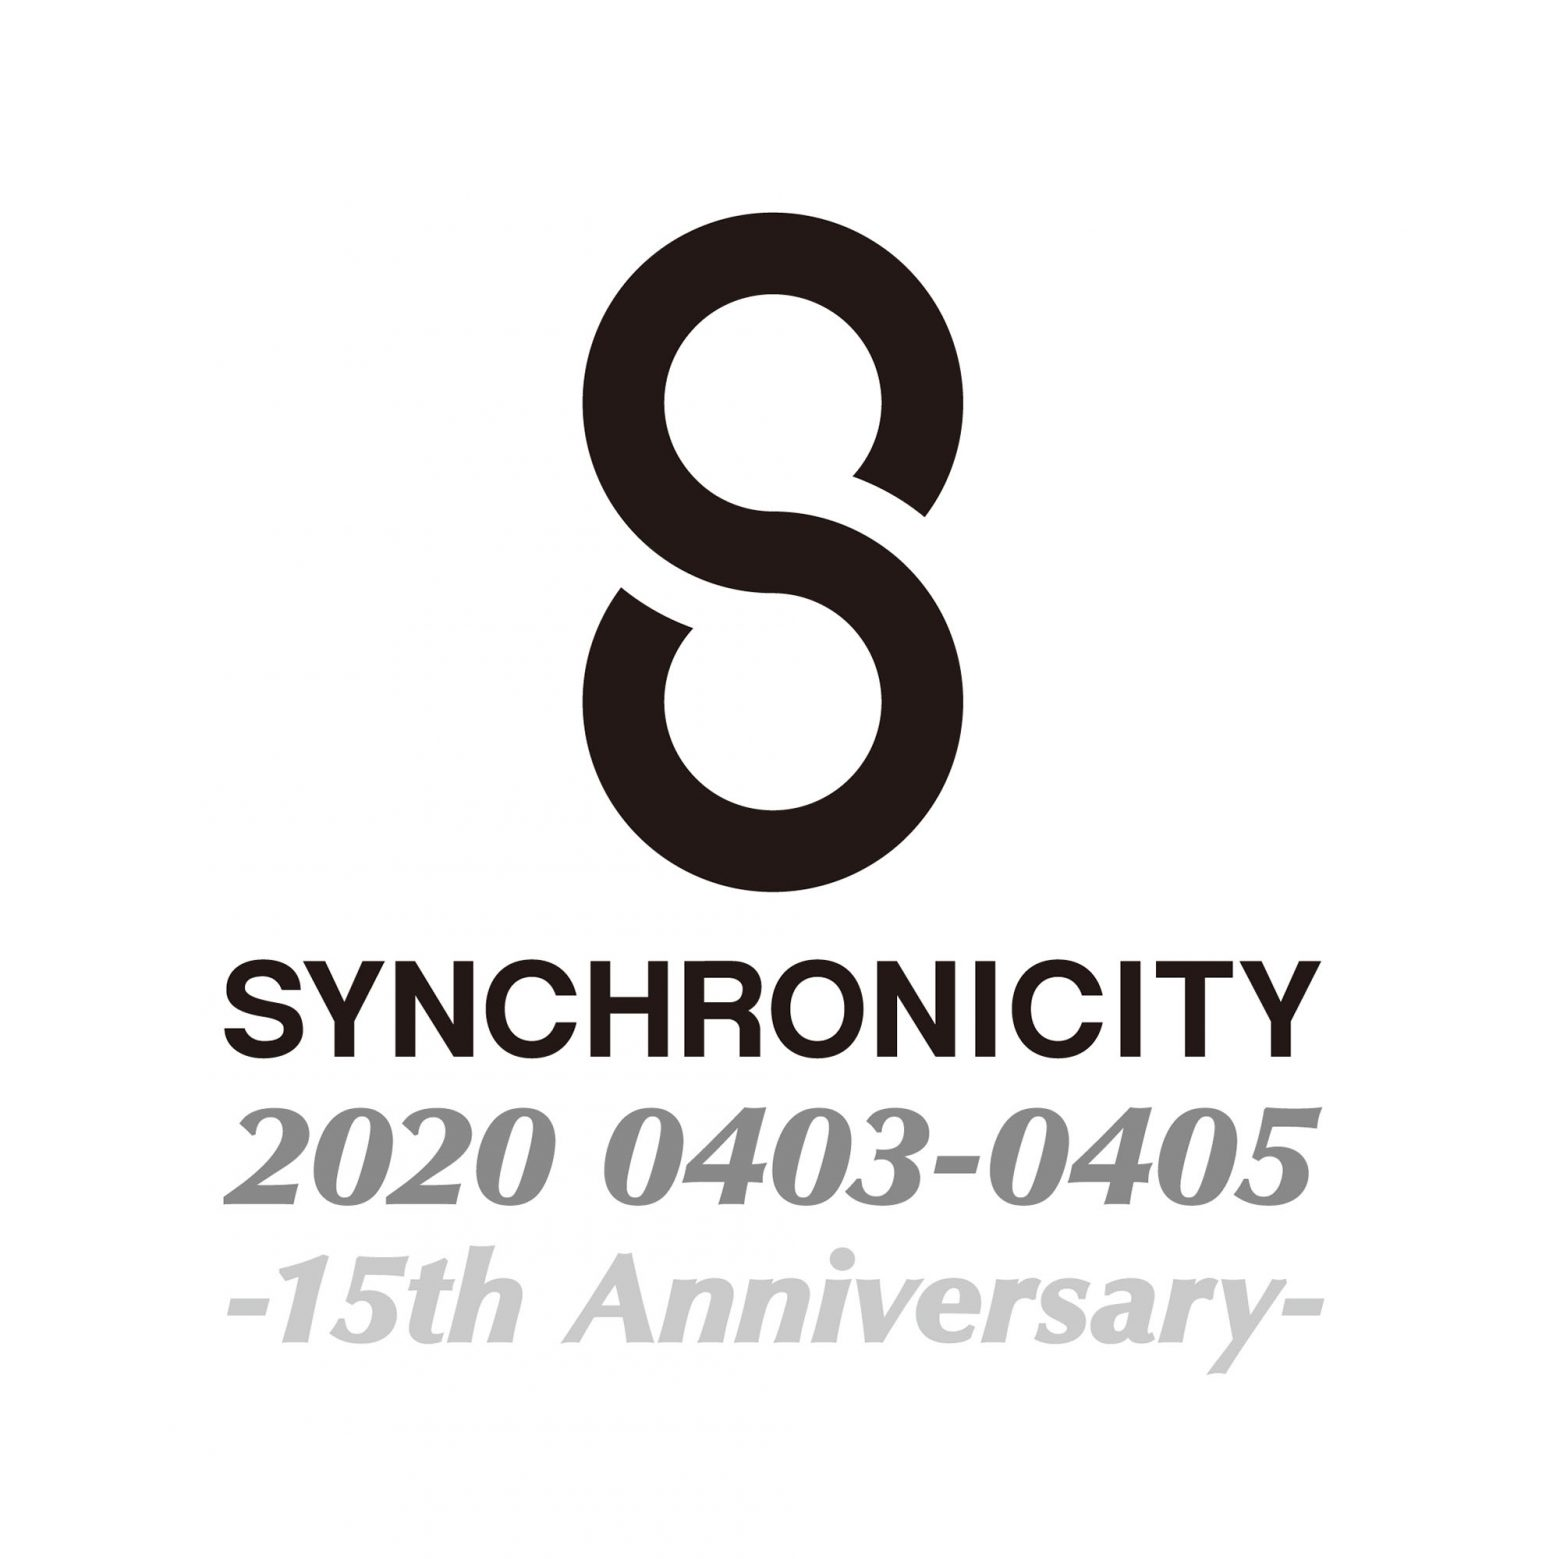 「SYNCHRONICITY2020 - 15th Anniversary!! -」